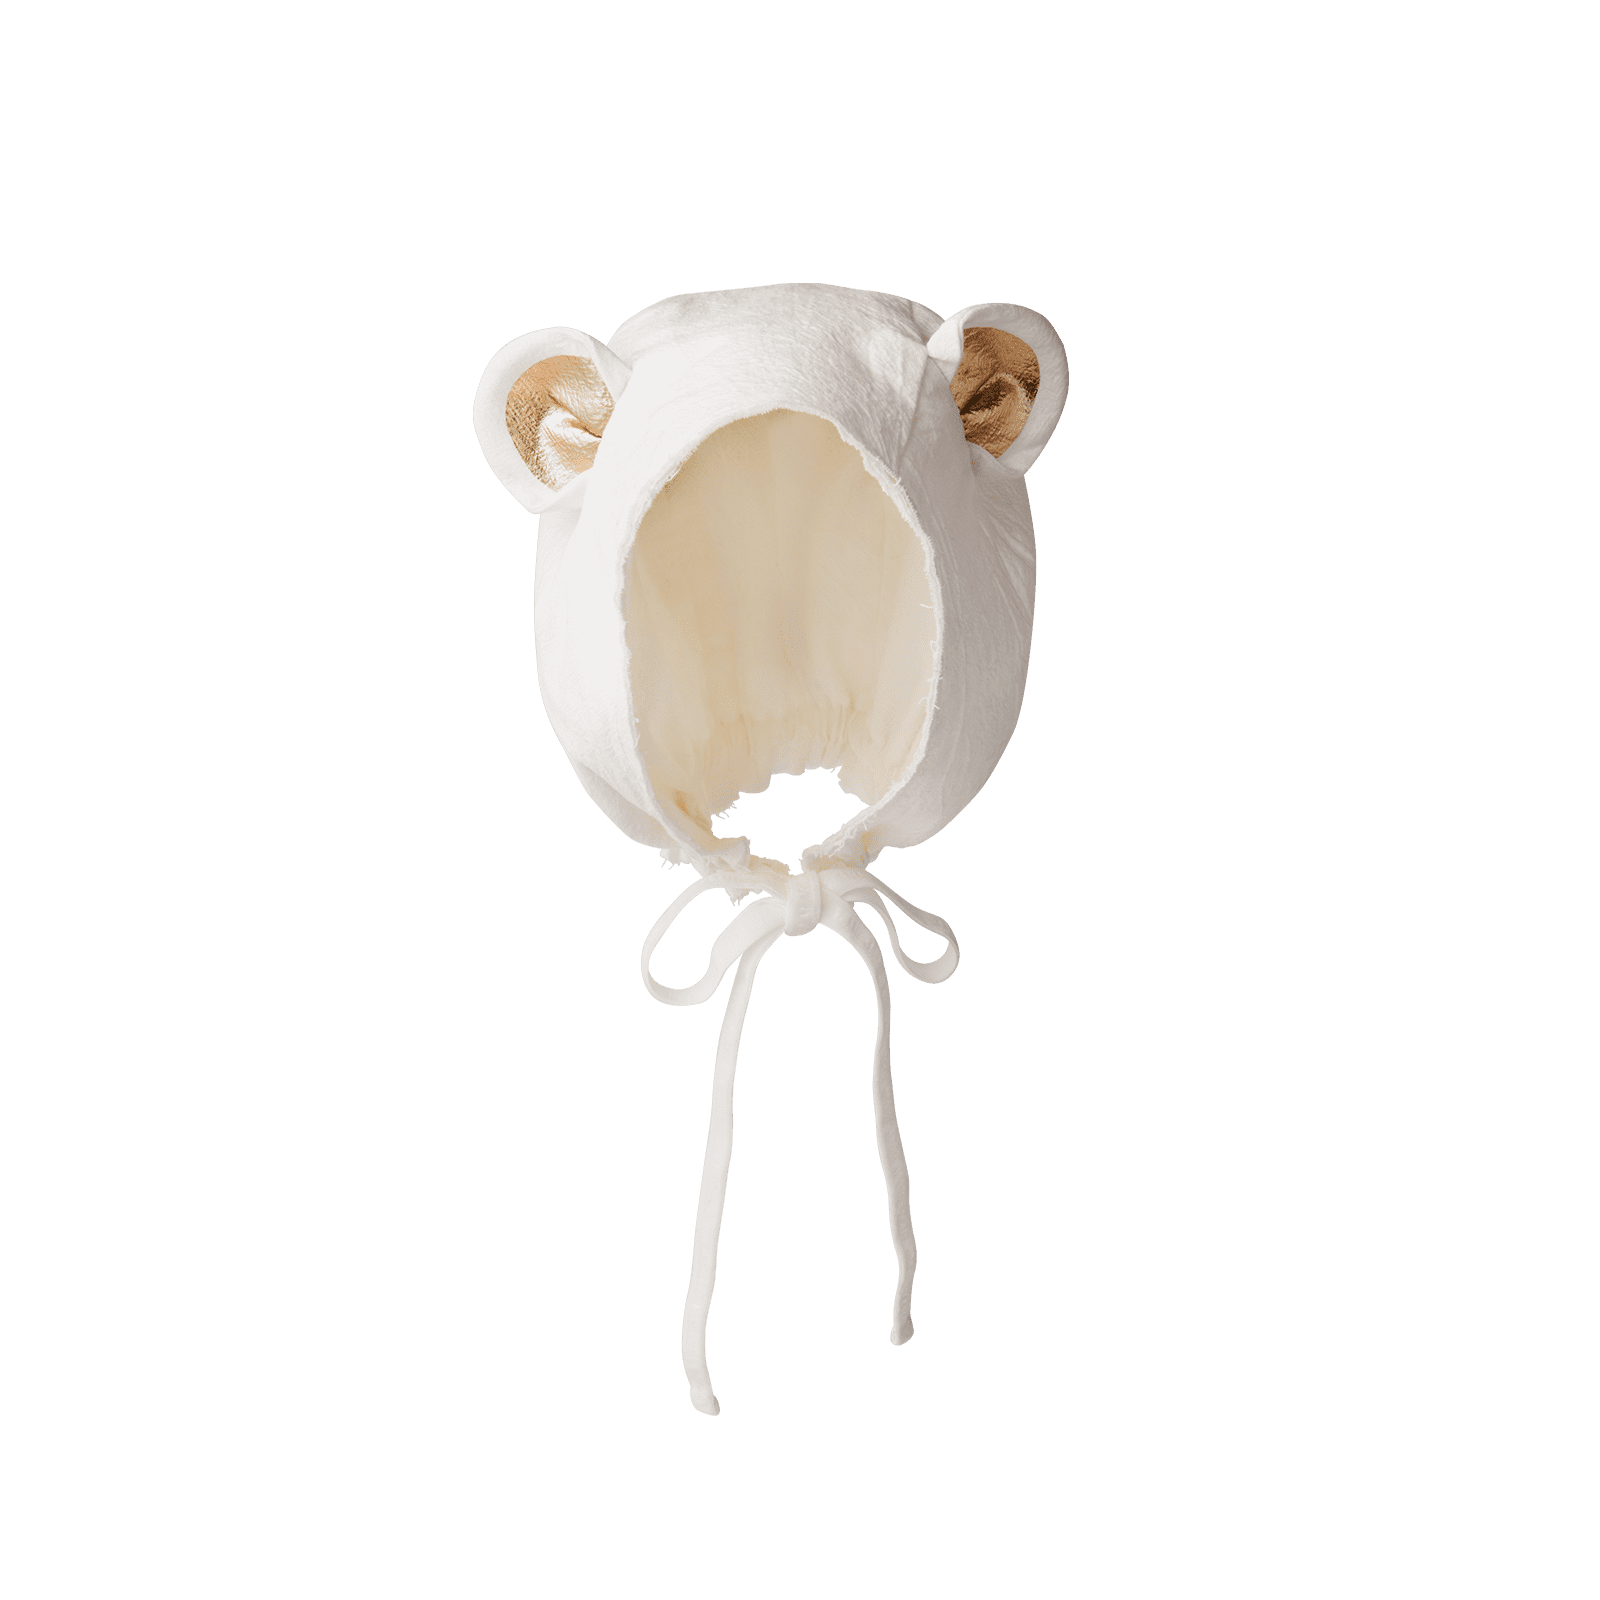 bonnet 3 bear white